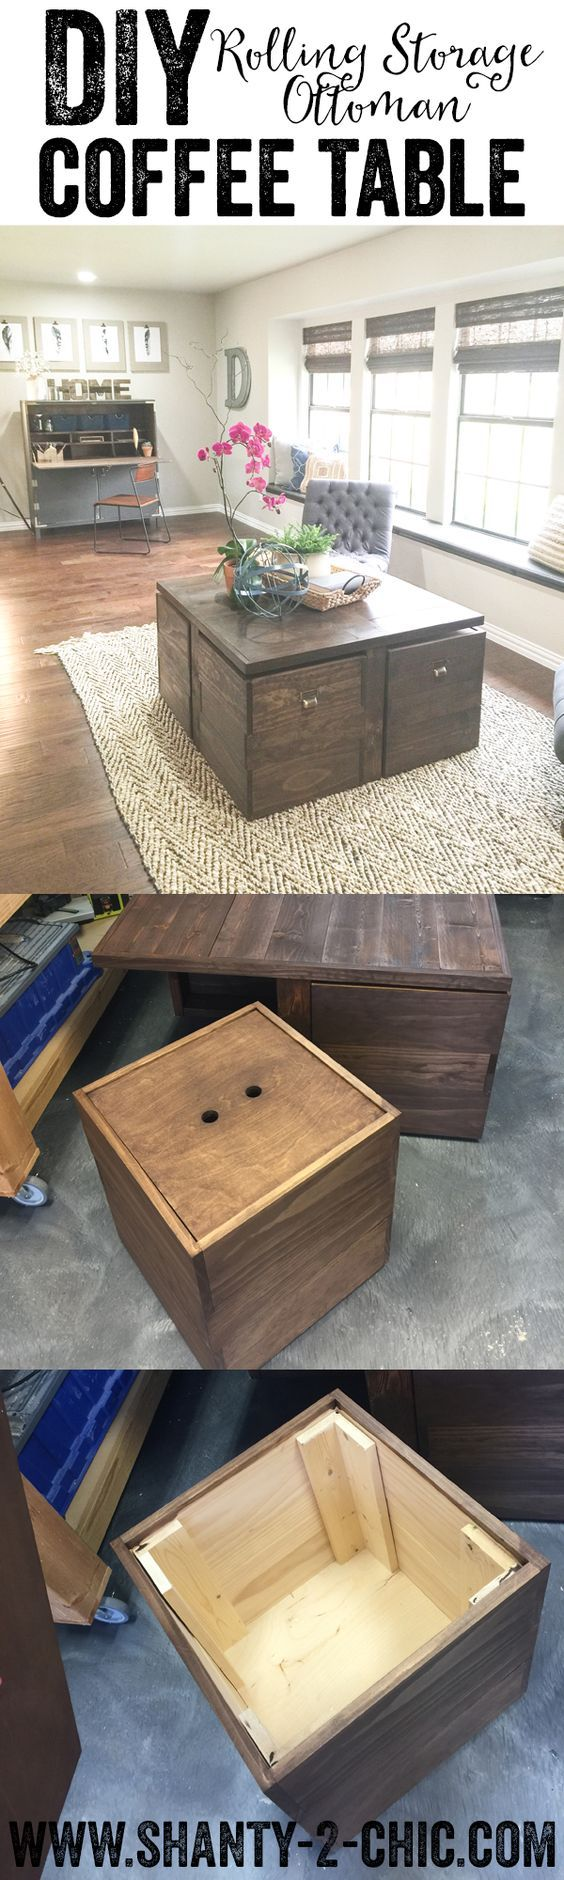 Diy rolling storage ottoman coffee table extra seating toy